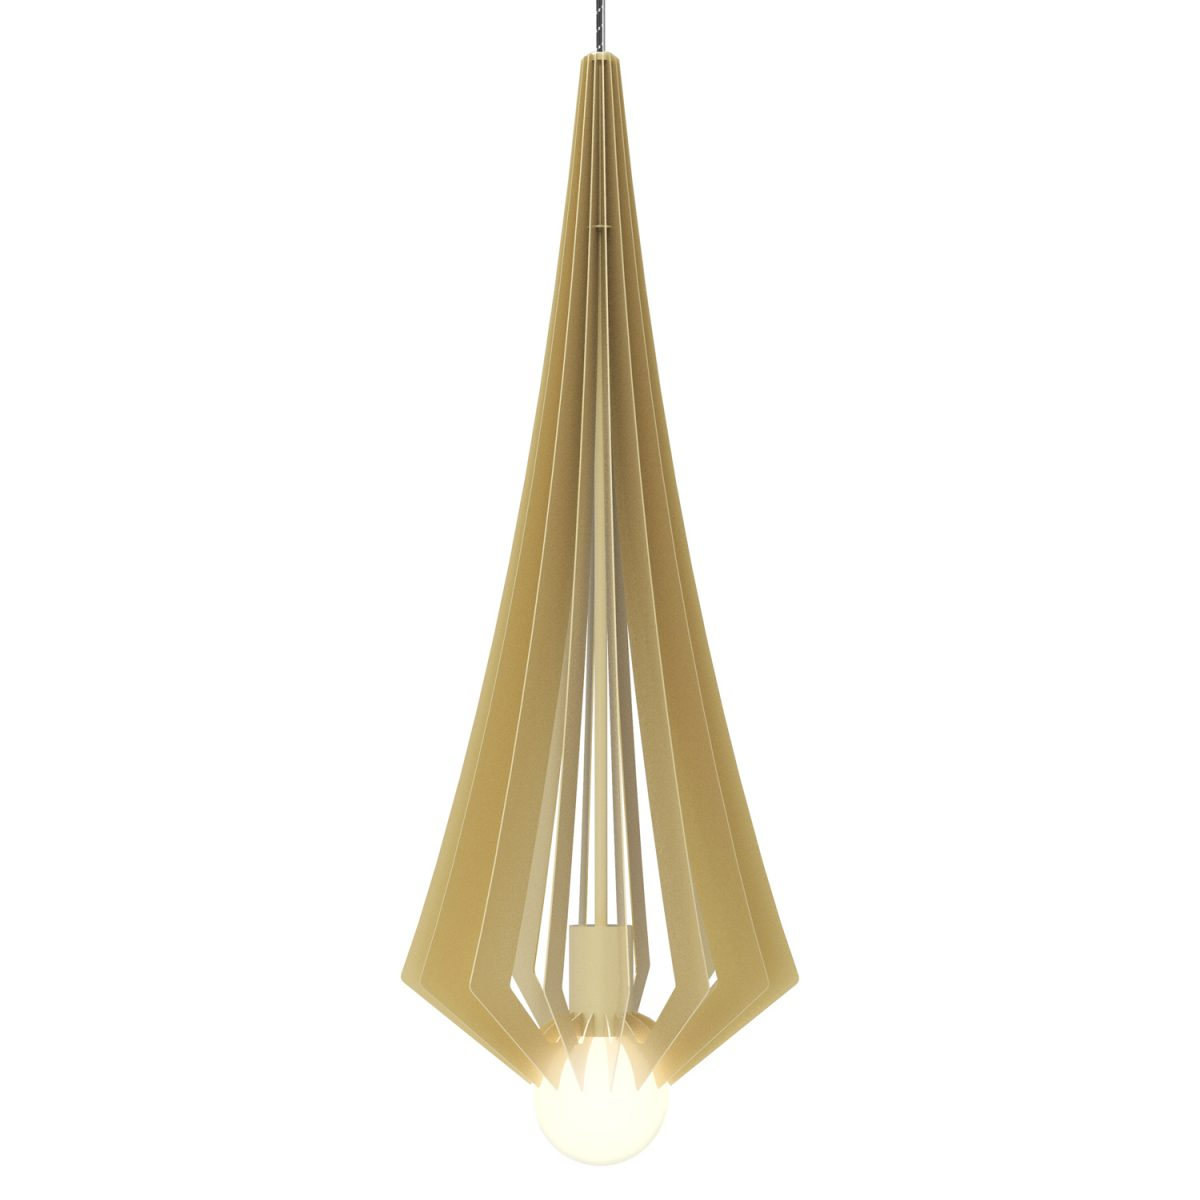 JSPR Beaudine III Champagne Opaque Dutch Design Hanglamp